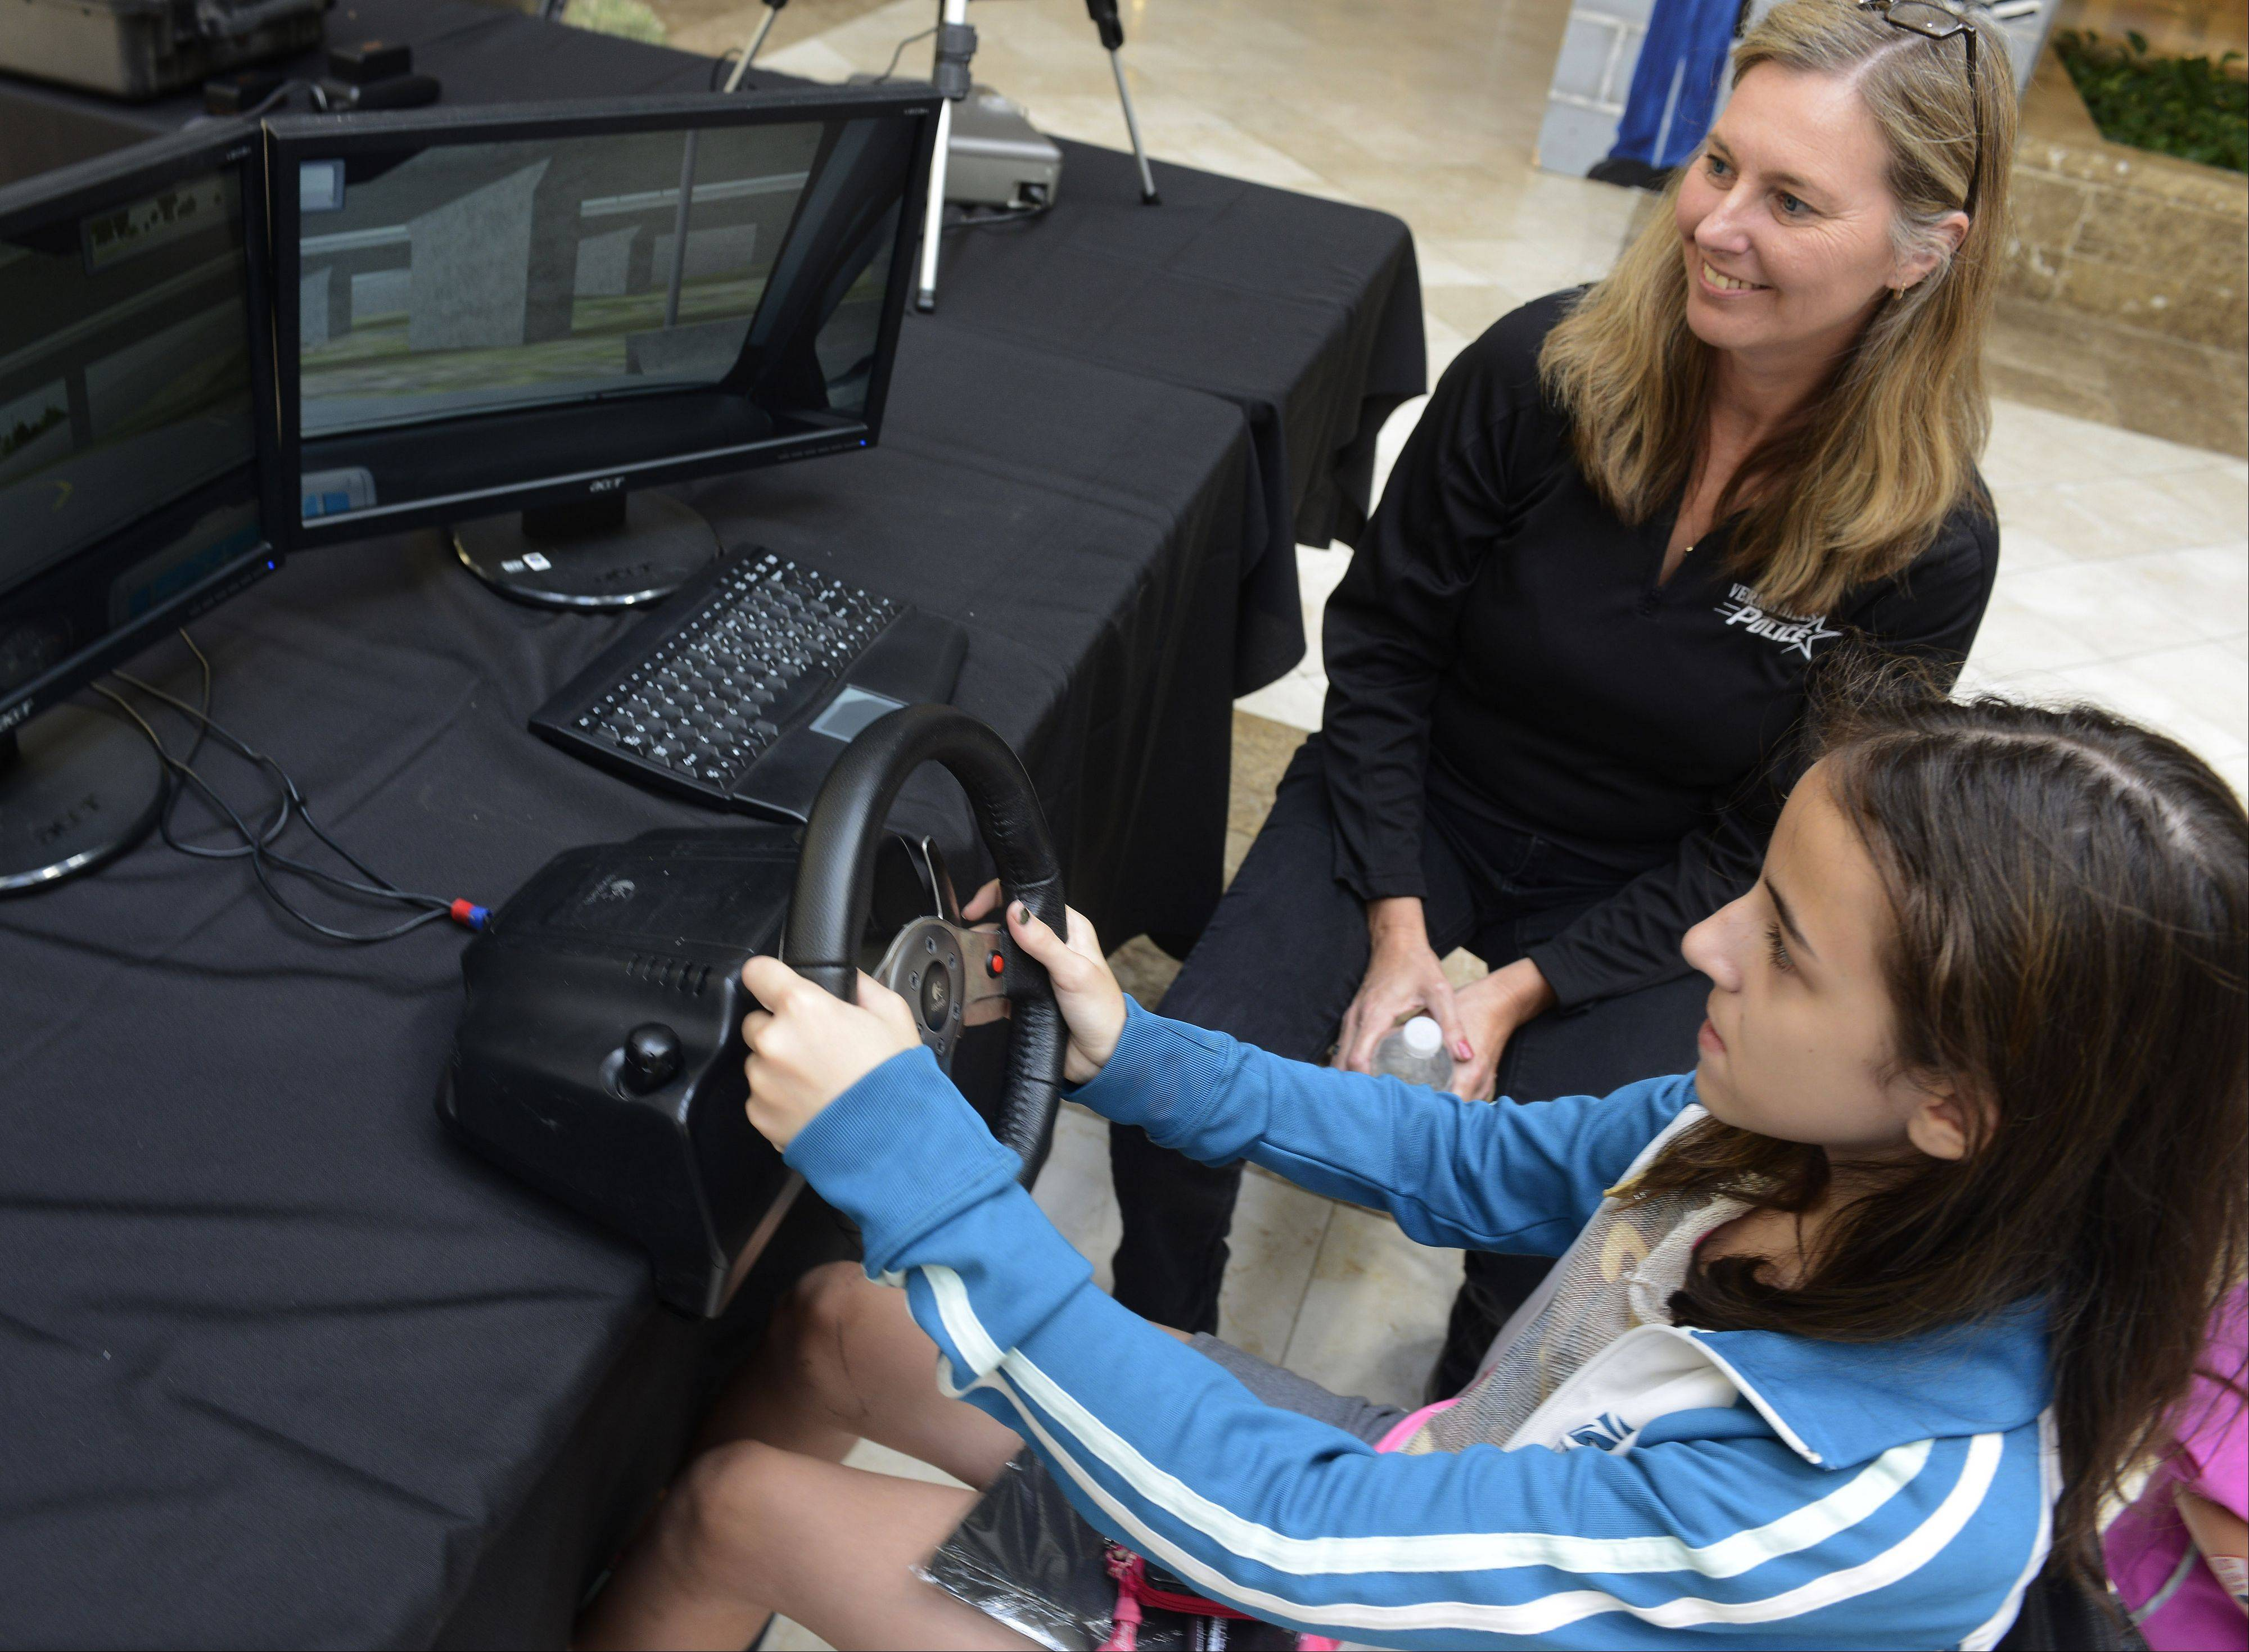 Aleasha Klegerman, 13, of Vernon Hills, tries out a driving simulator with the help of Vernon Hills Police Department Administrative Assistant Liz Koehl during the 9th annual Law Enforcement Exhibition at the Westfield Hawthorn Mall in Vernon Hills Saturday.